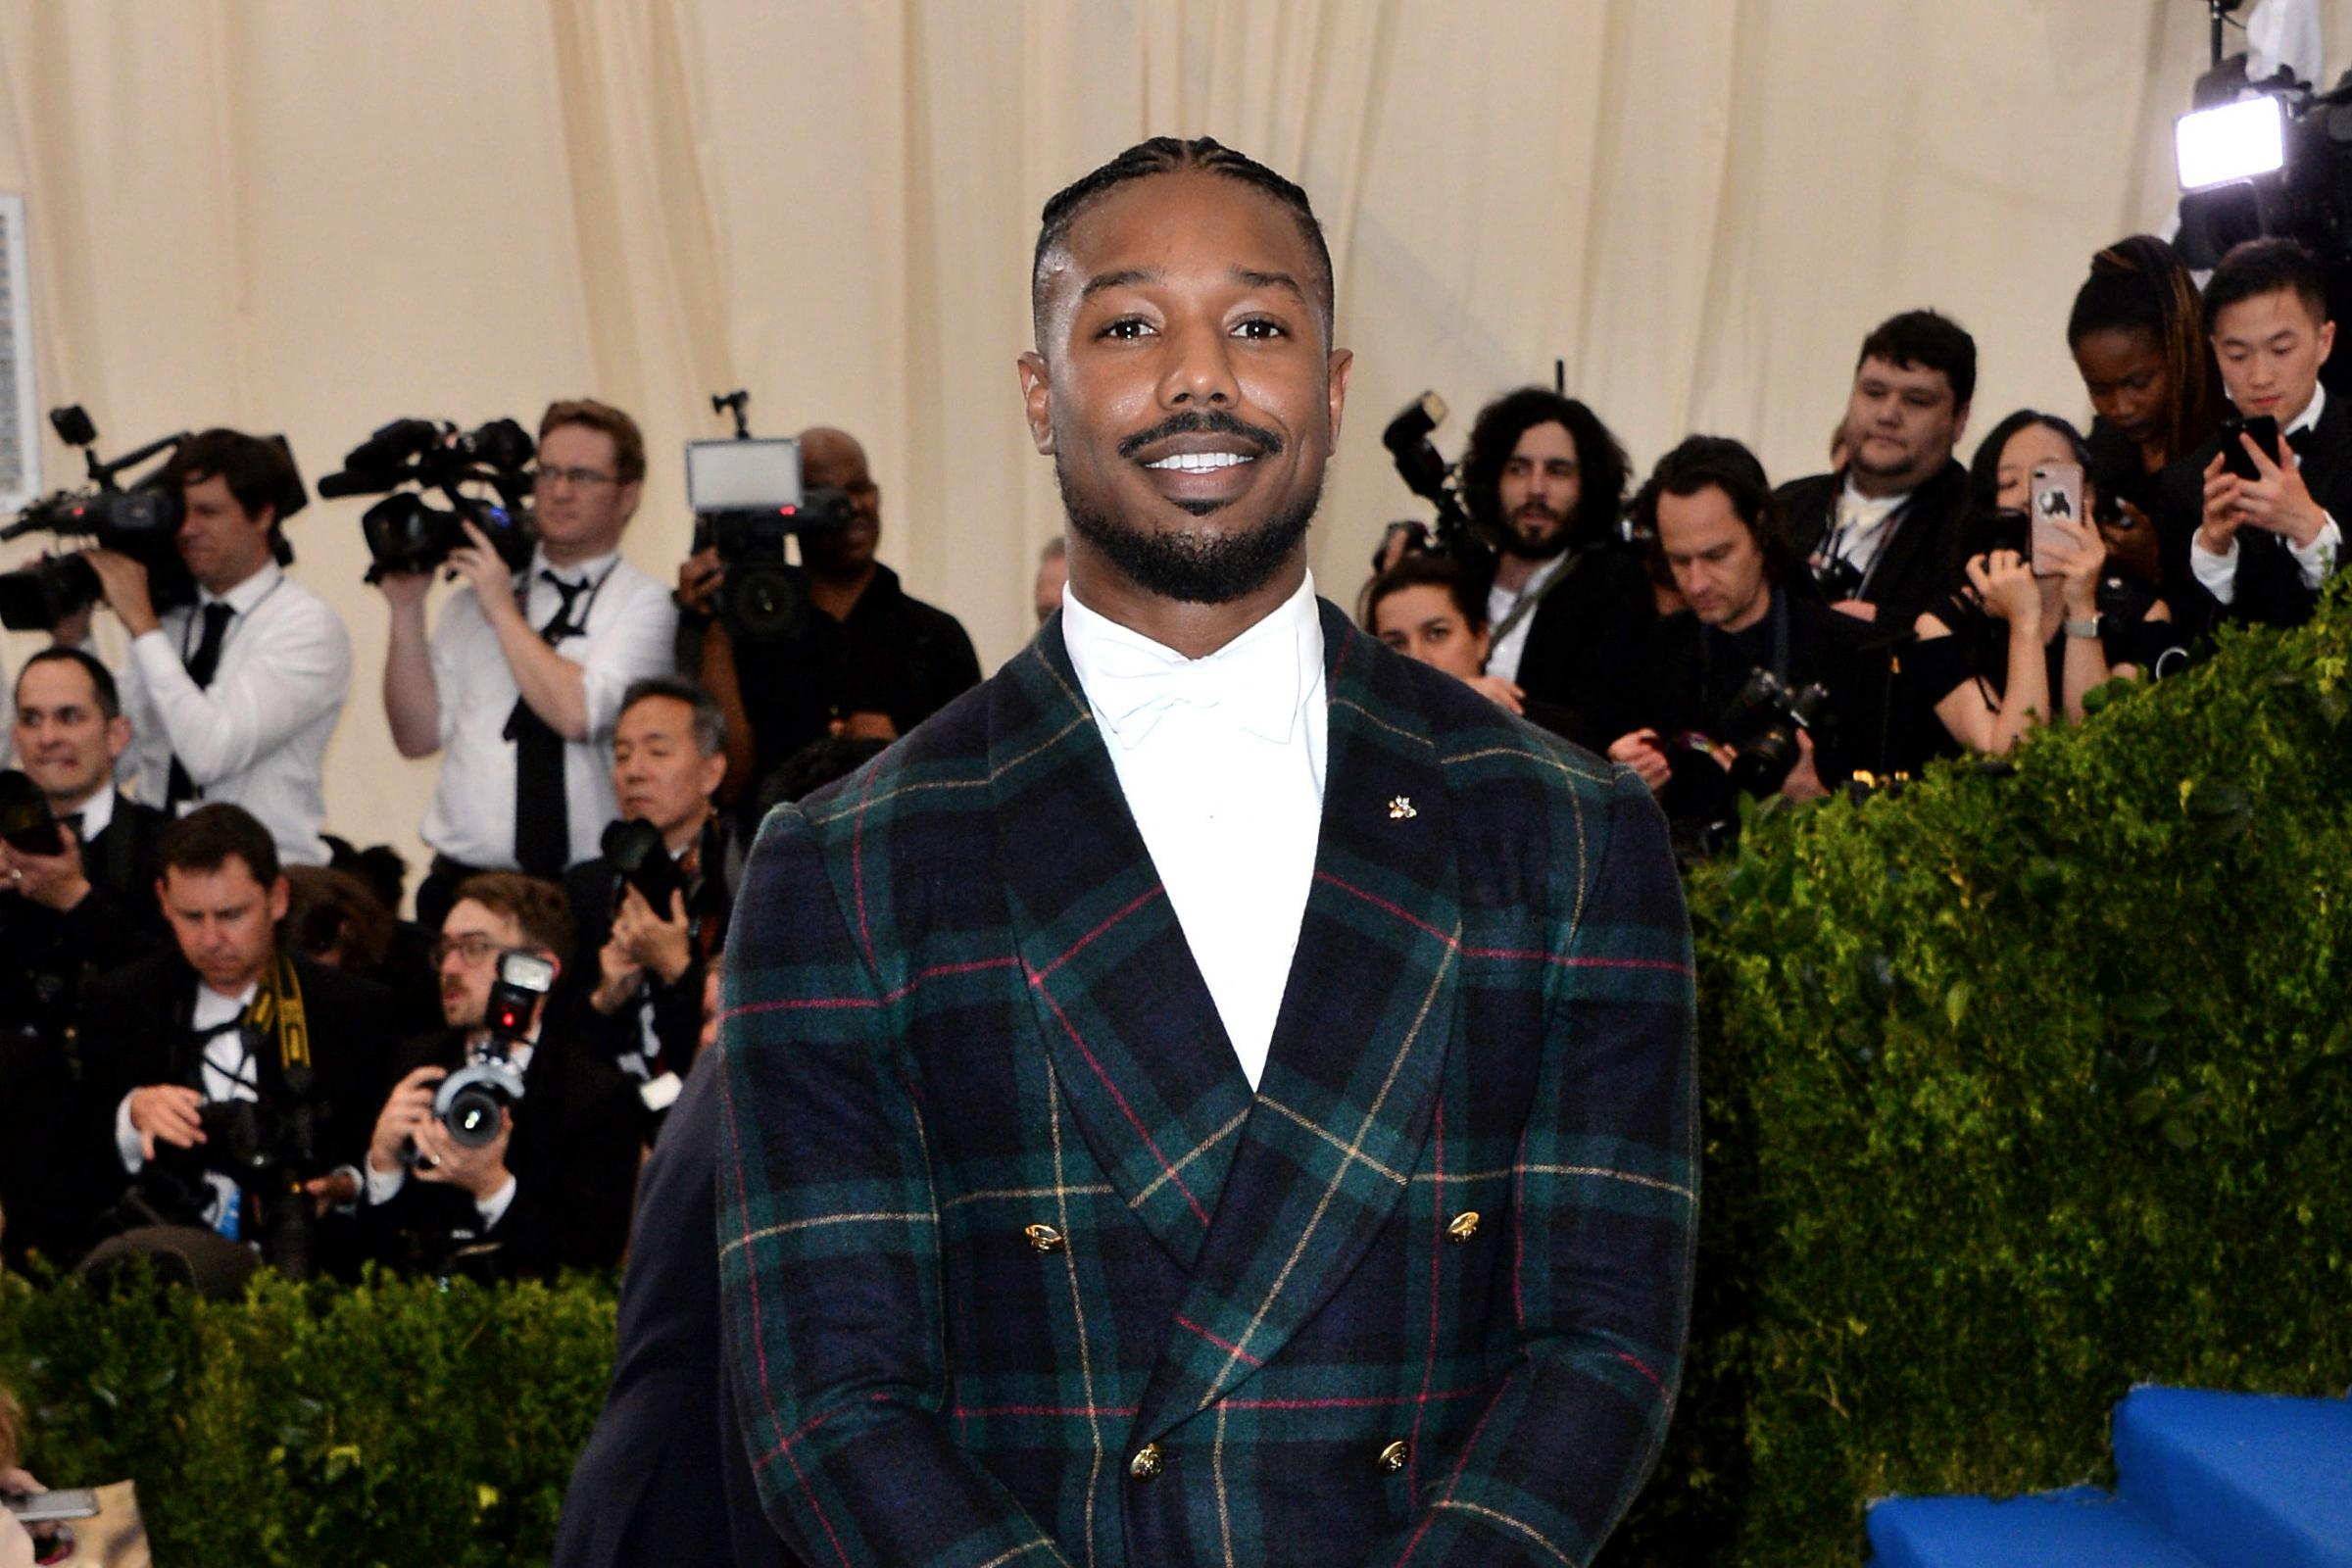 Michael B Jordan to adopt inclusion riders at company to encourage diversity (Aurore Marechal/PA)